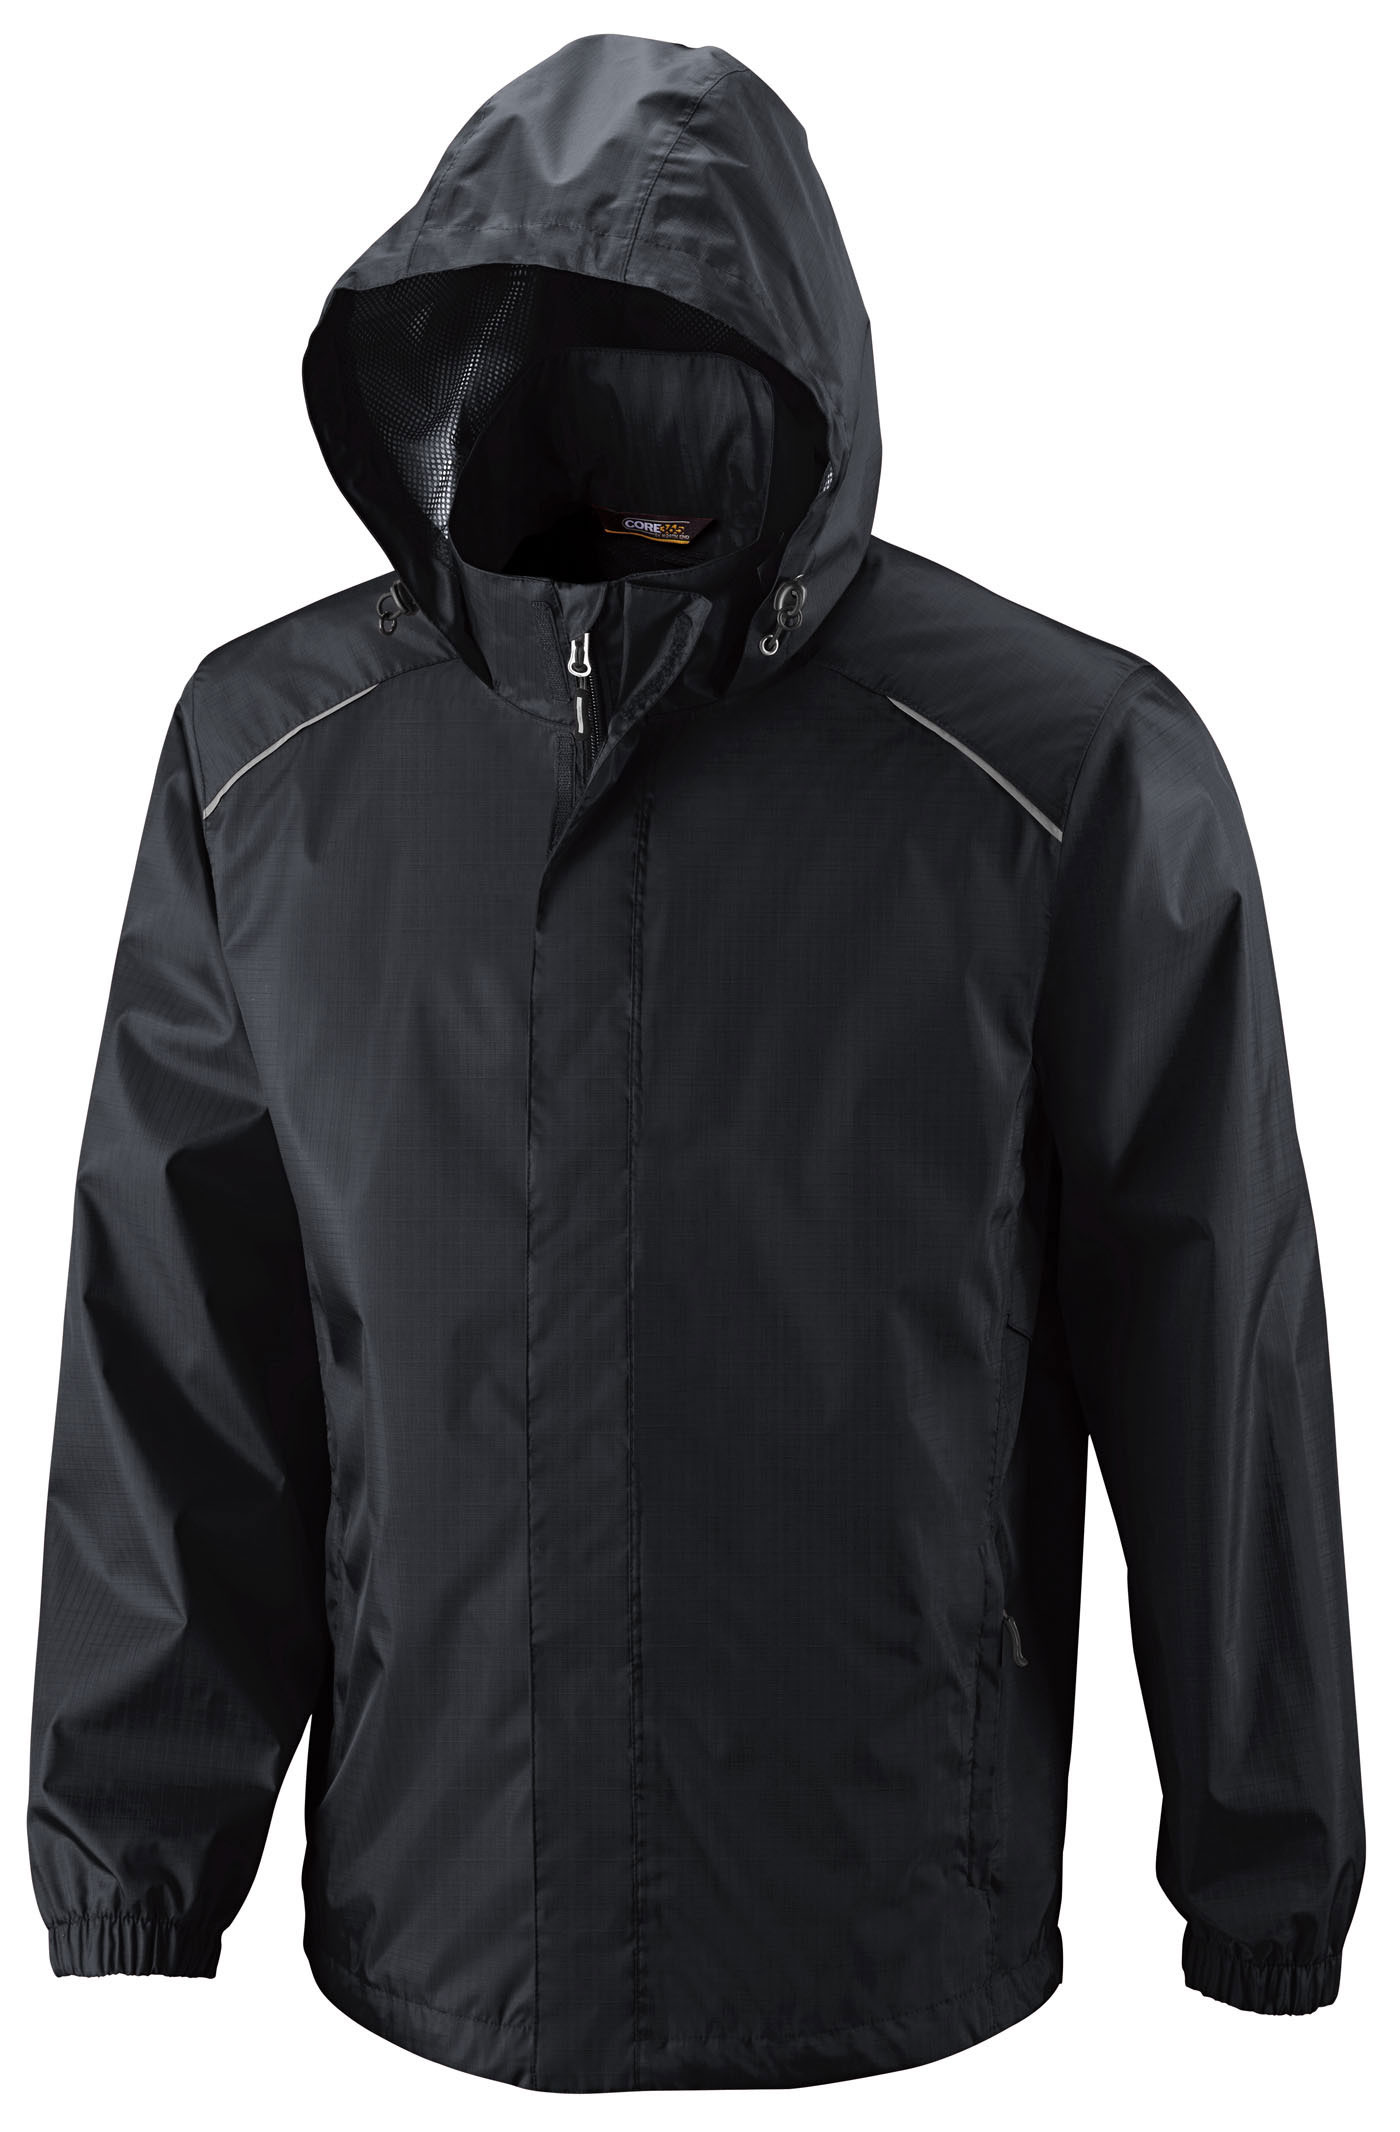 Climate Core365™ Mens Seam-Sealed Lightweight Ripstop Jacket